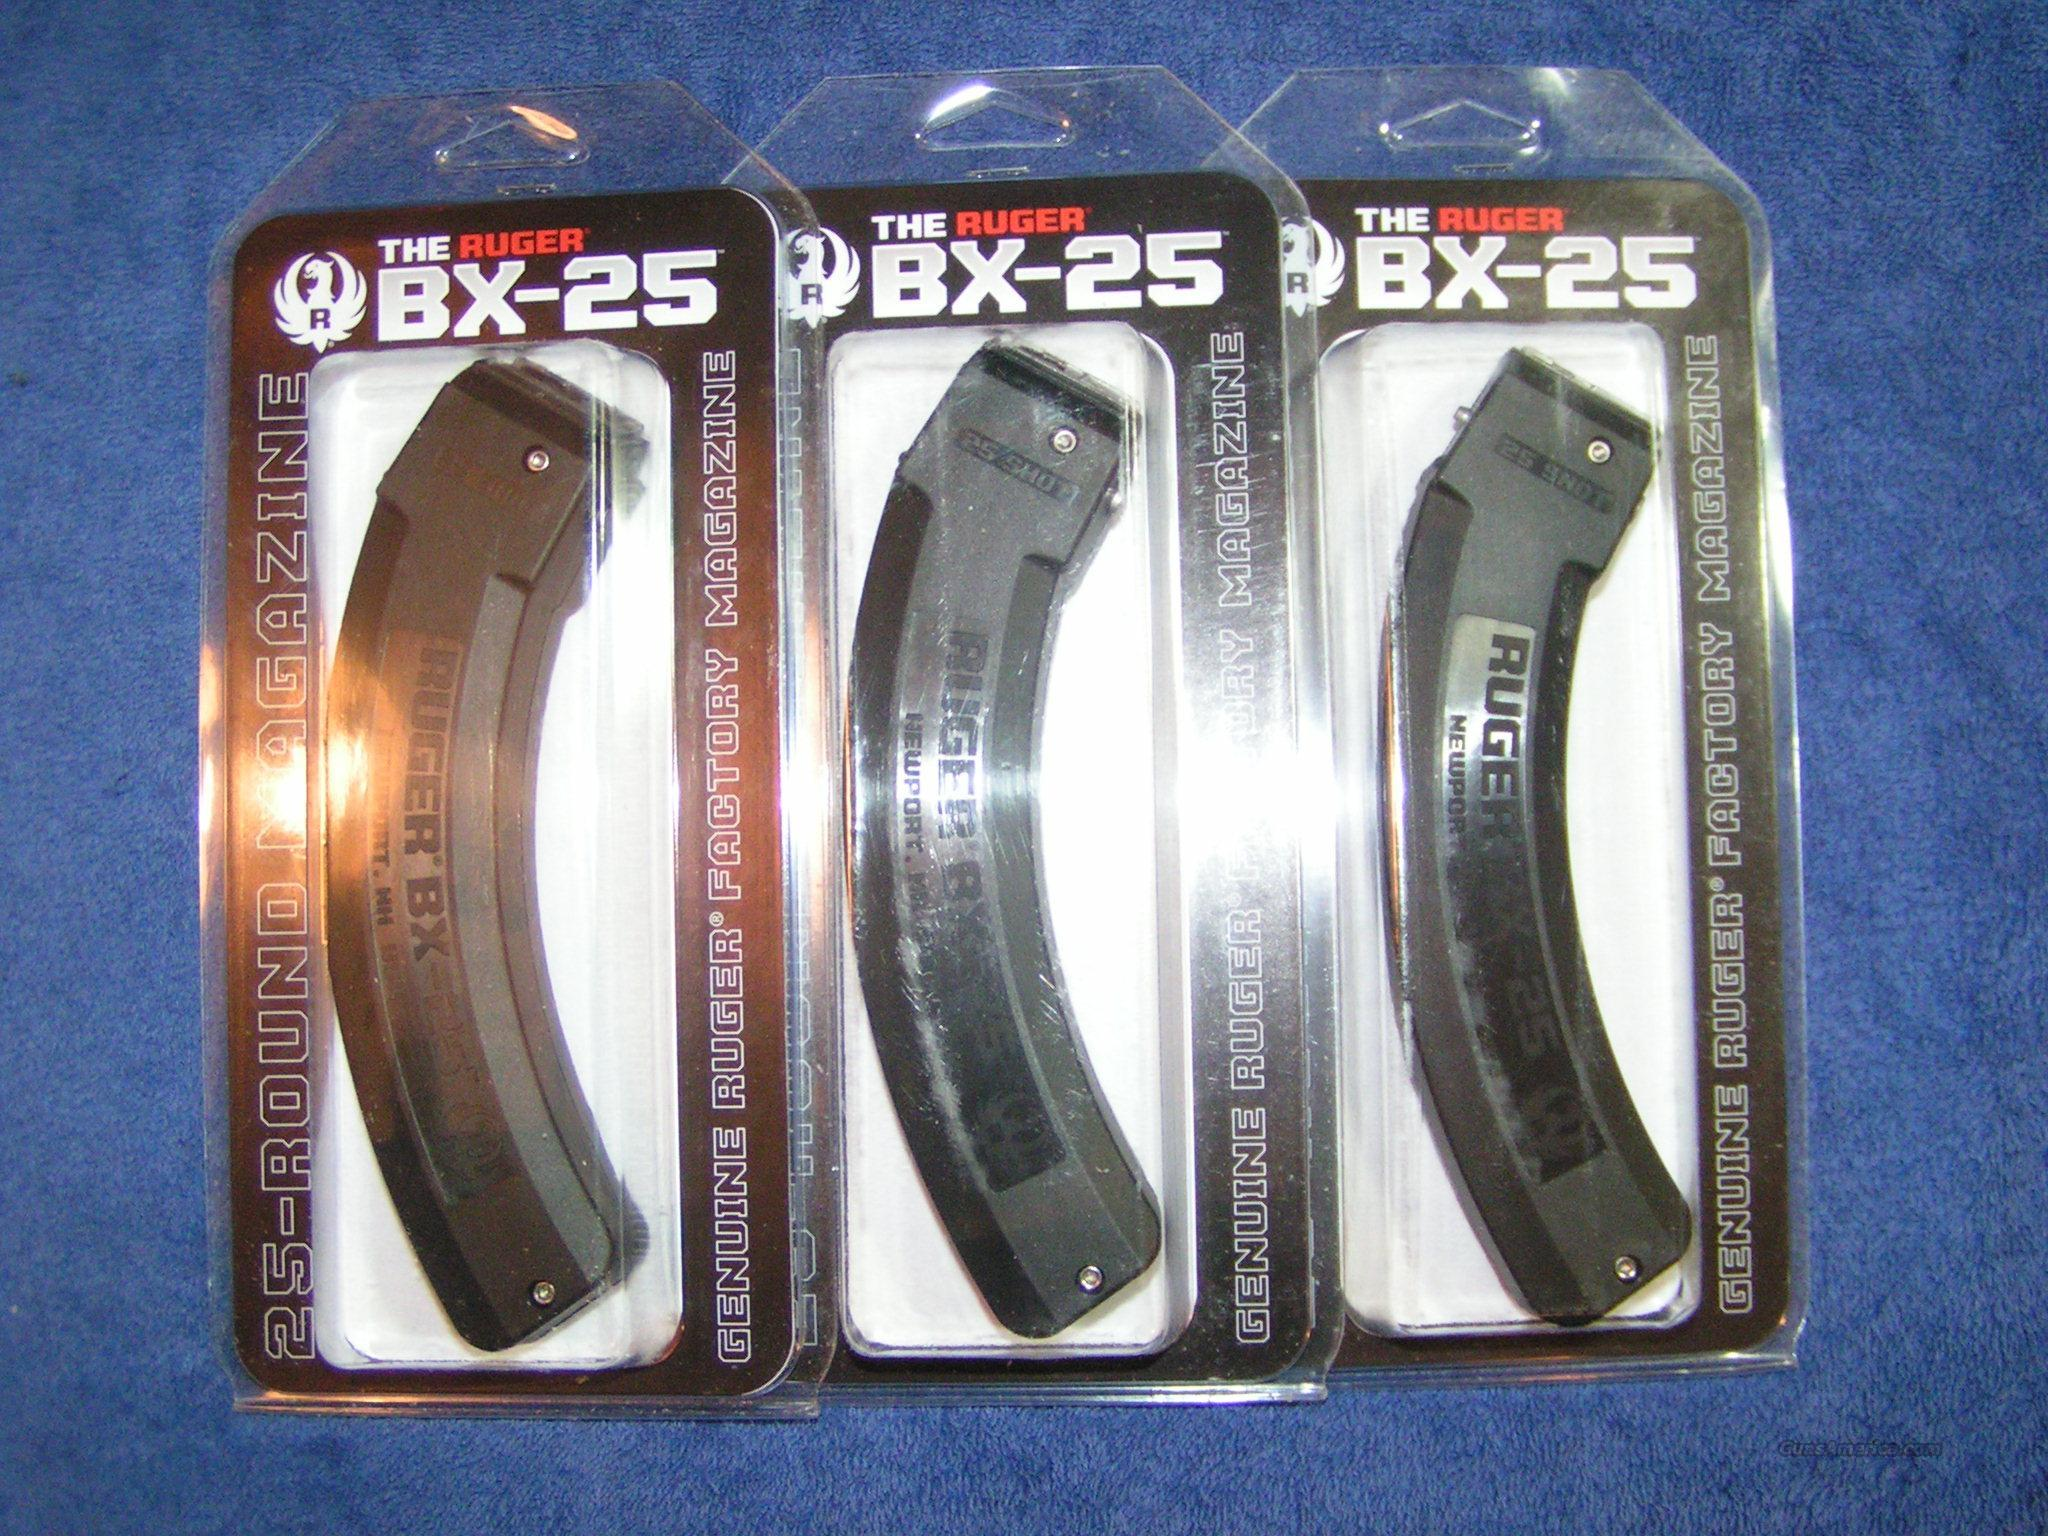 3 10/22 mags Ruger 25 rd BX-25 1022 Free shipping. $26 each  Non-Guns > Magazines & Clips > Rifle Magazines > Other